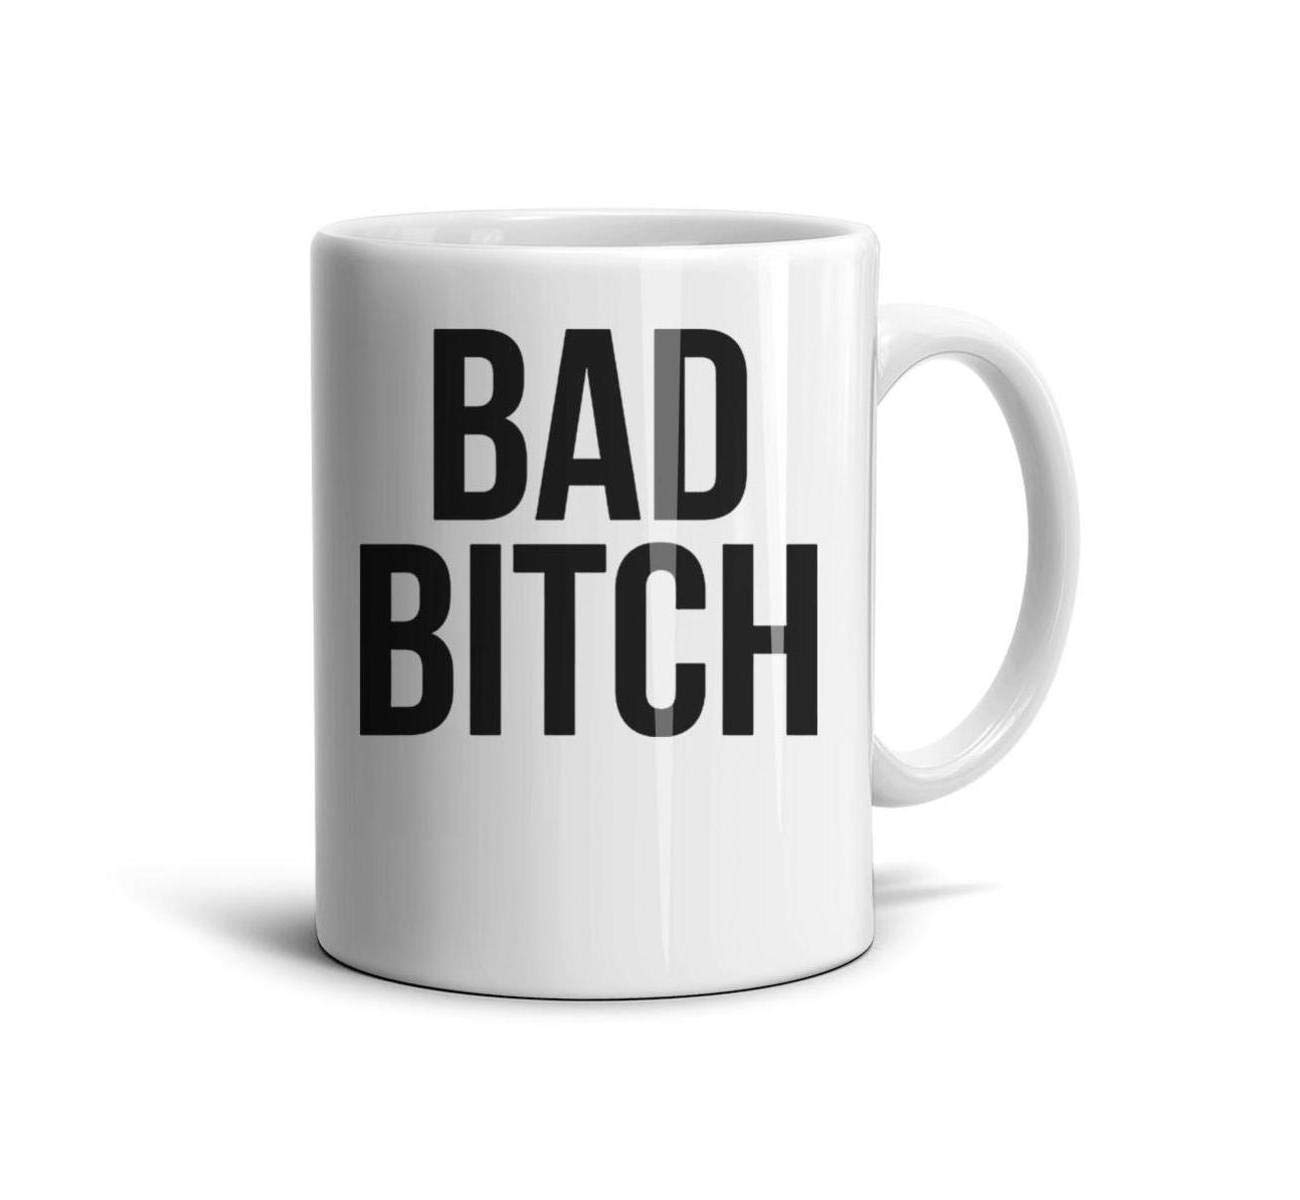 devrrssx Bad Bitch Black Printed Letters Cool Mug Great Gift 1 Set for Office and Home for dadMaximum Capacity 13.5oz